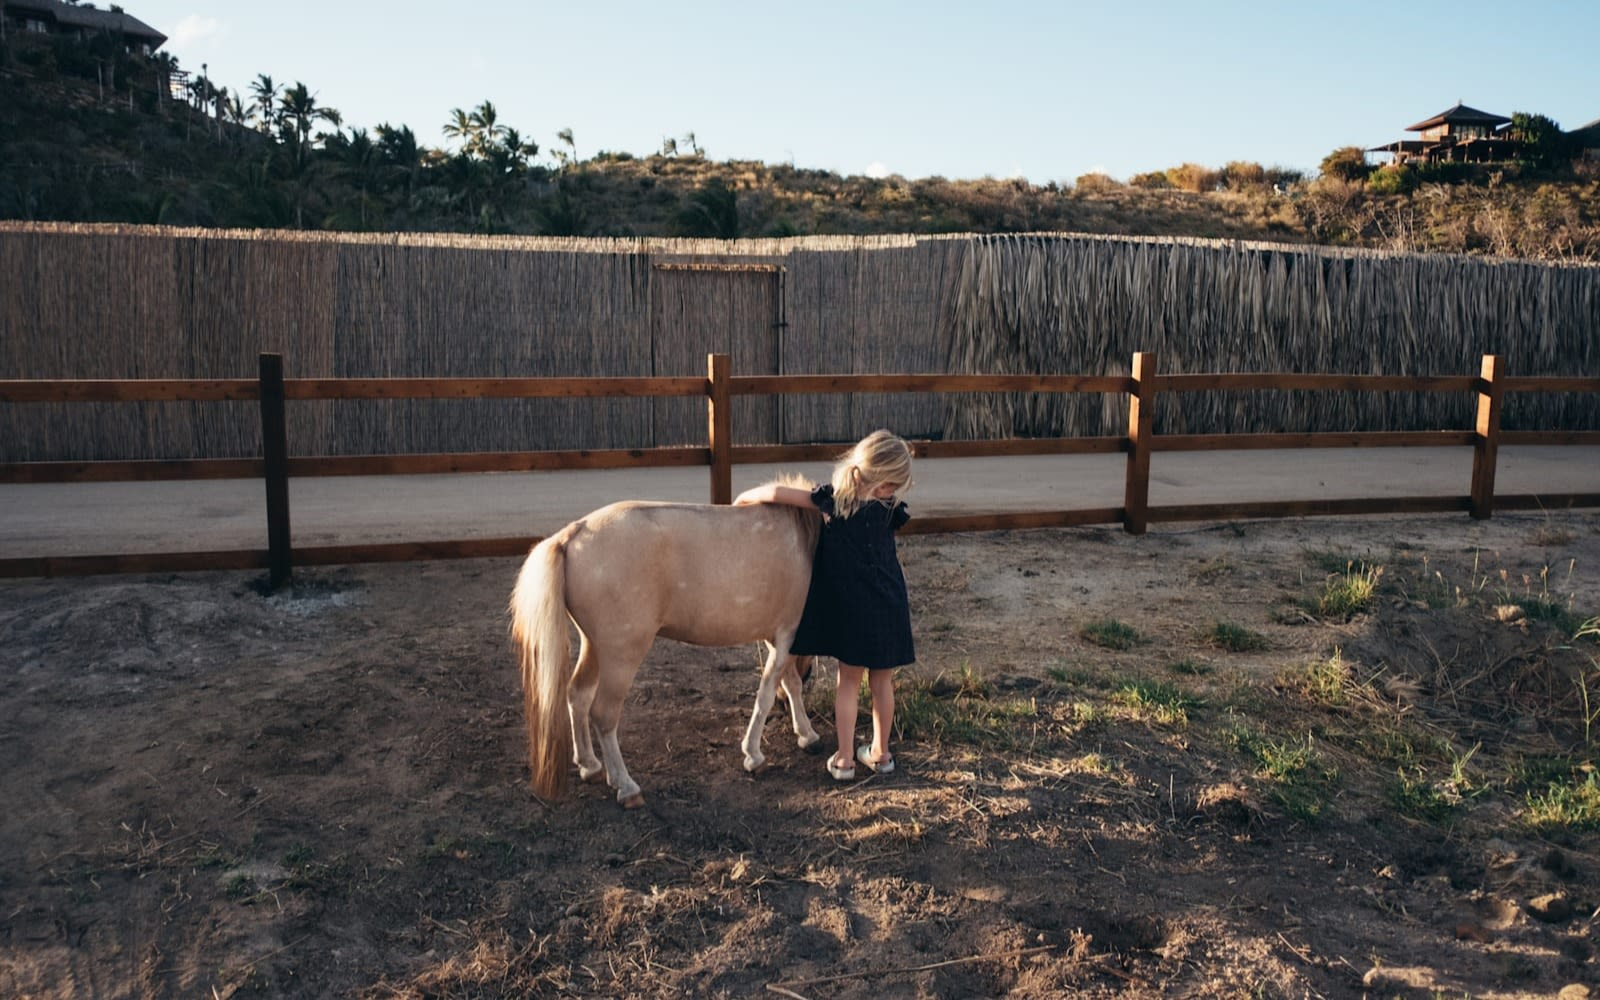 Richard Branson's grandchild hugging a miniature horse in a fenced yard on Necker Island.